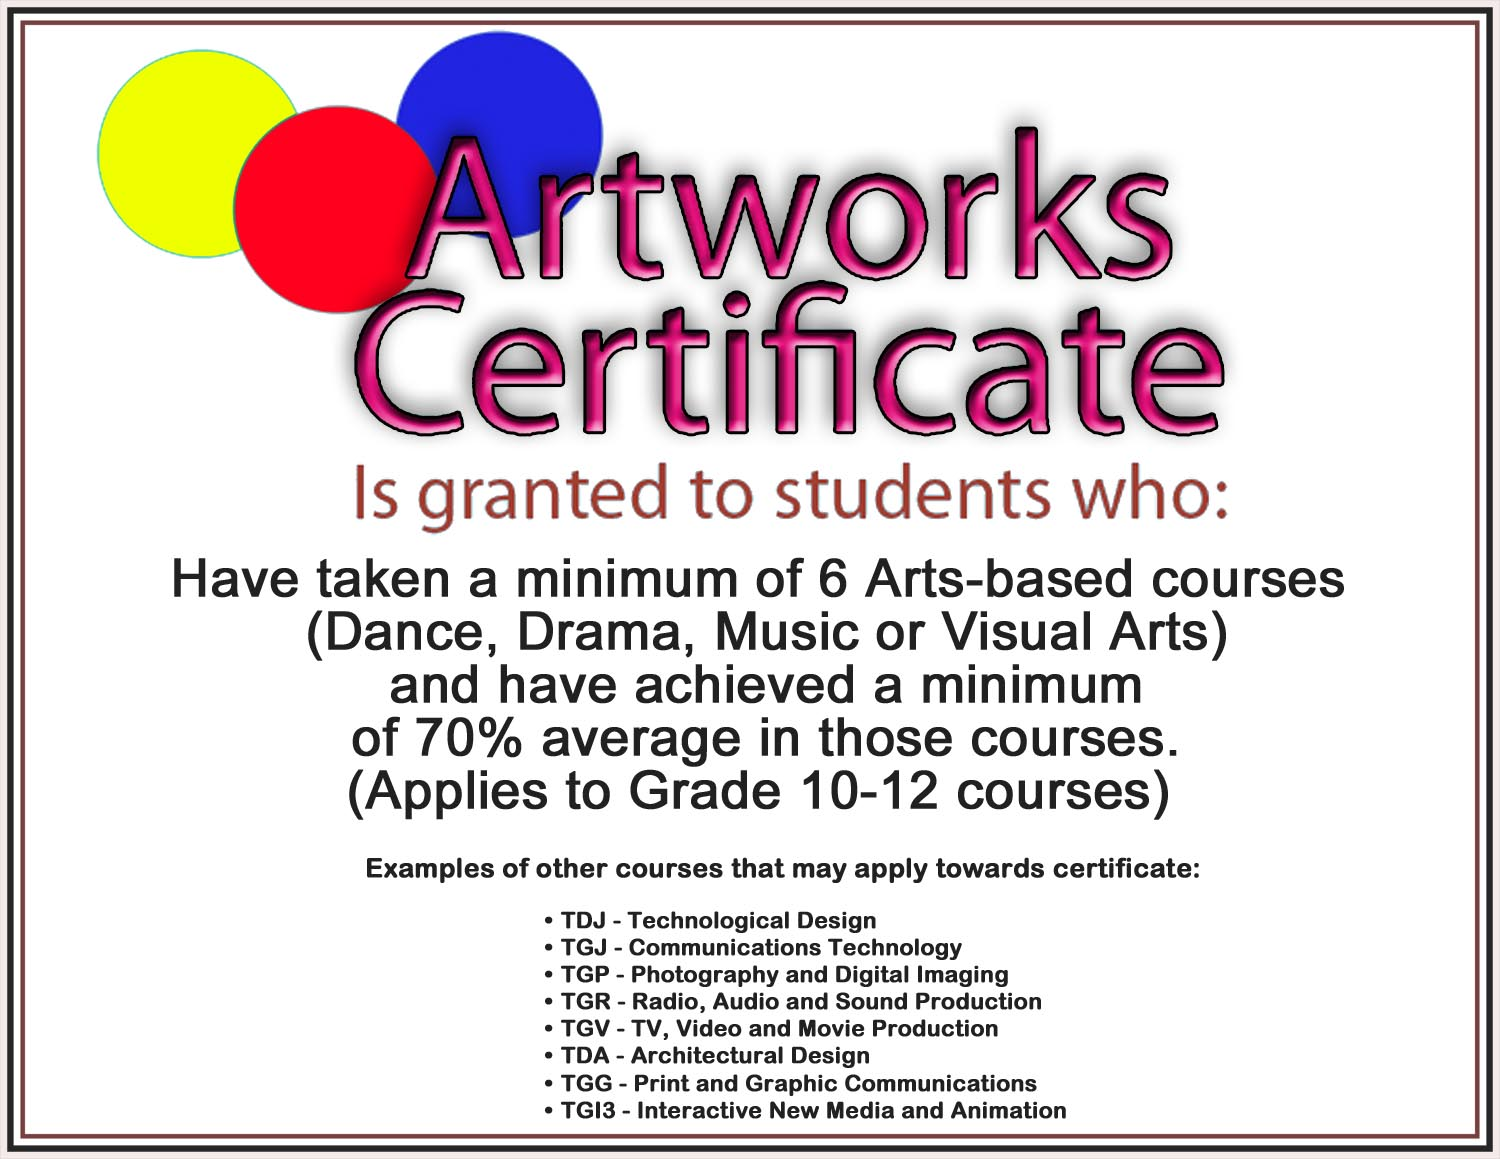 smlr artworks certificate promo poster v4 with border copy